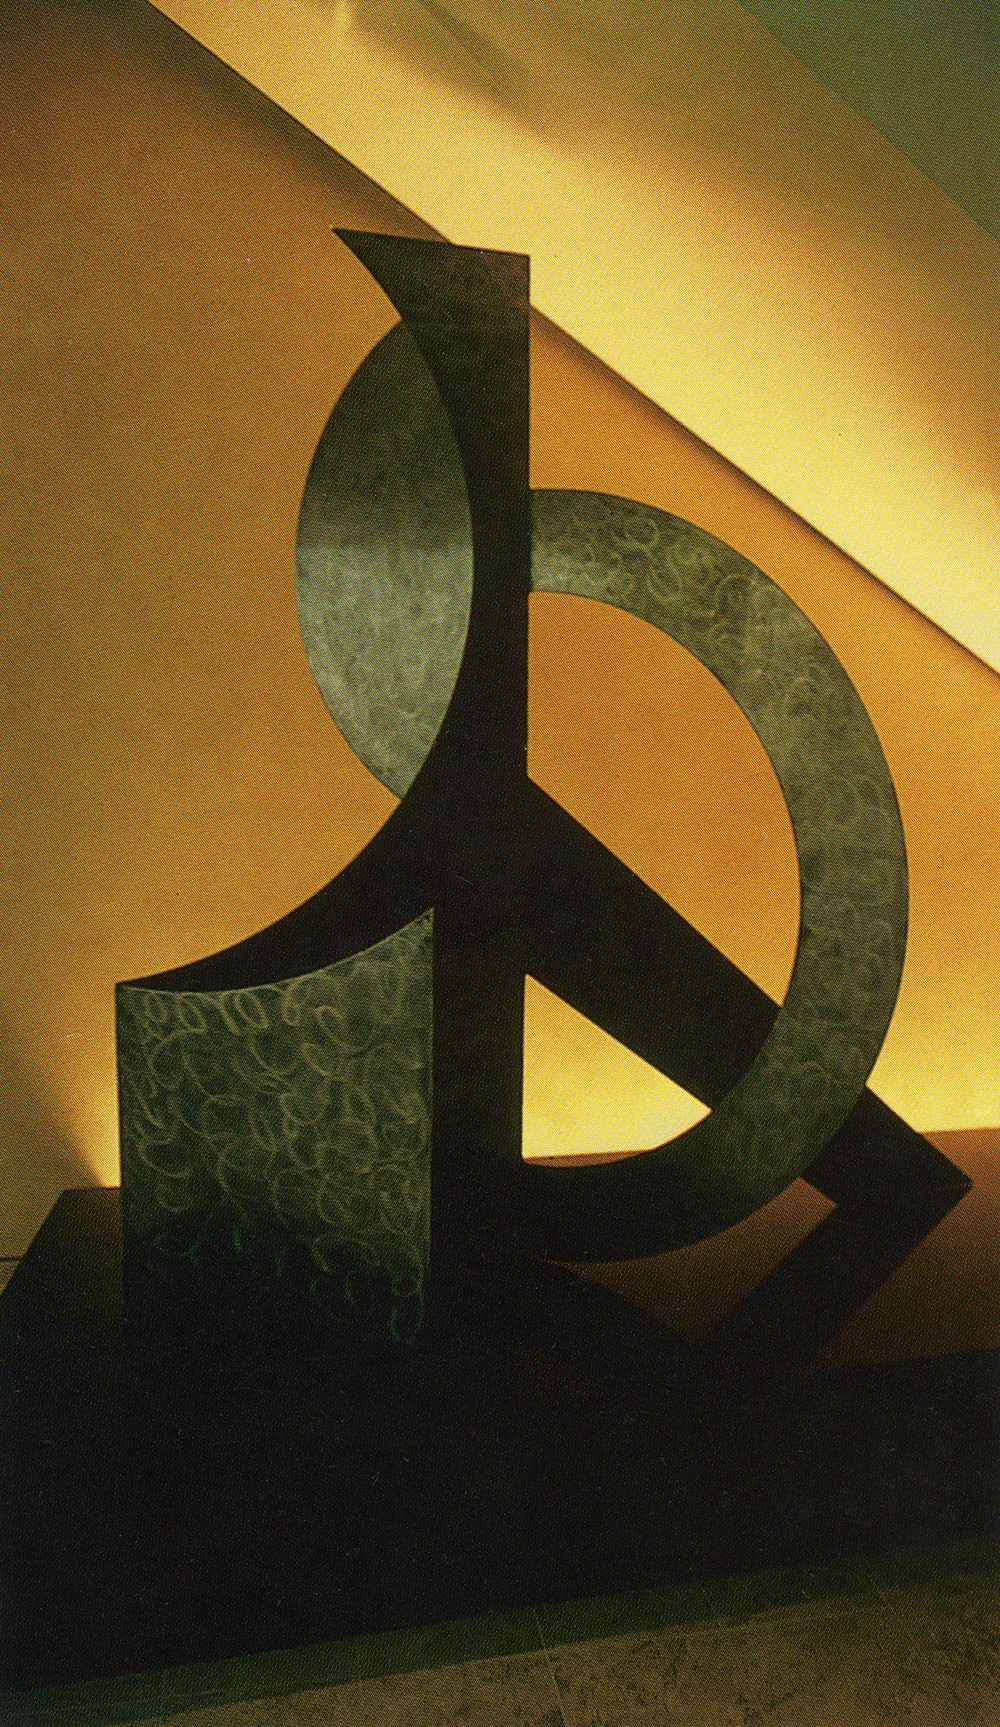 Law Office, Century City, California; 1997.  S.M.XII.  7' x 6.5' x 4.5'